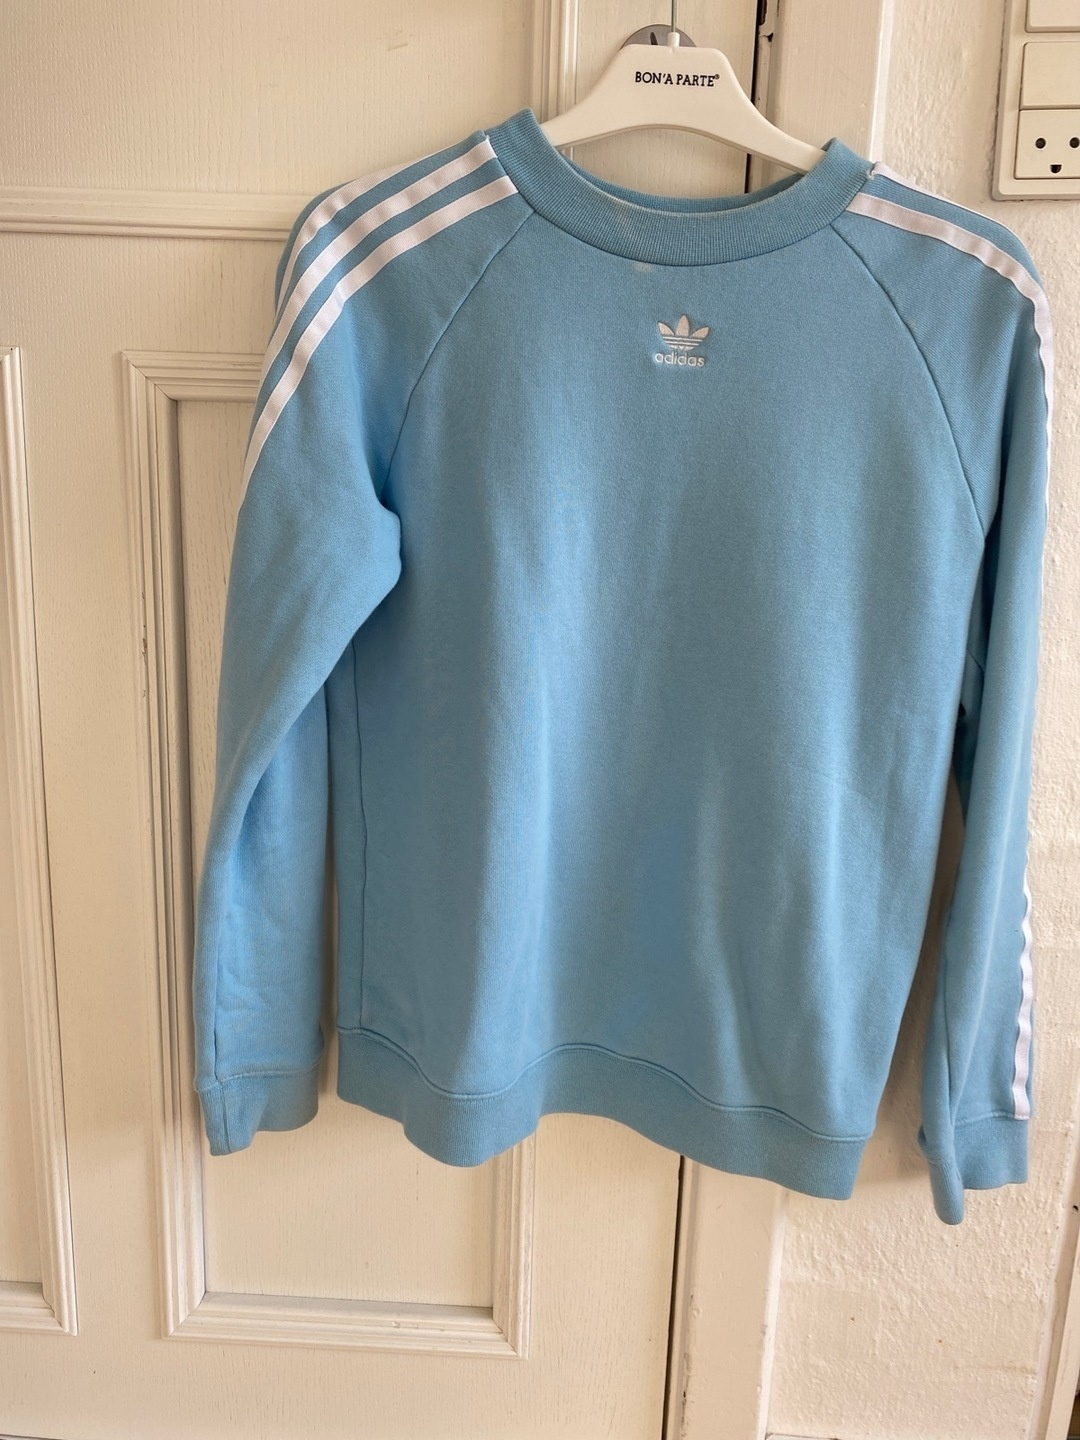 Women's hoodies & sweatshirts - ADIDAS photo 1